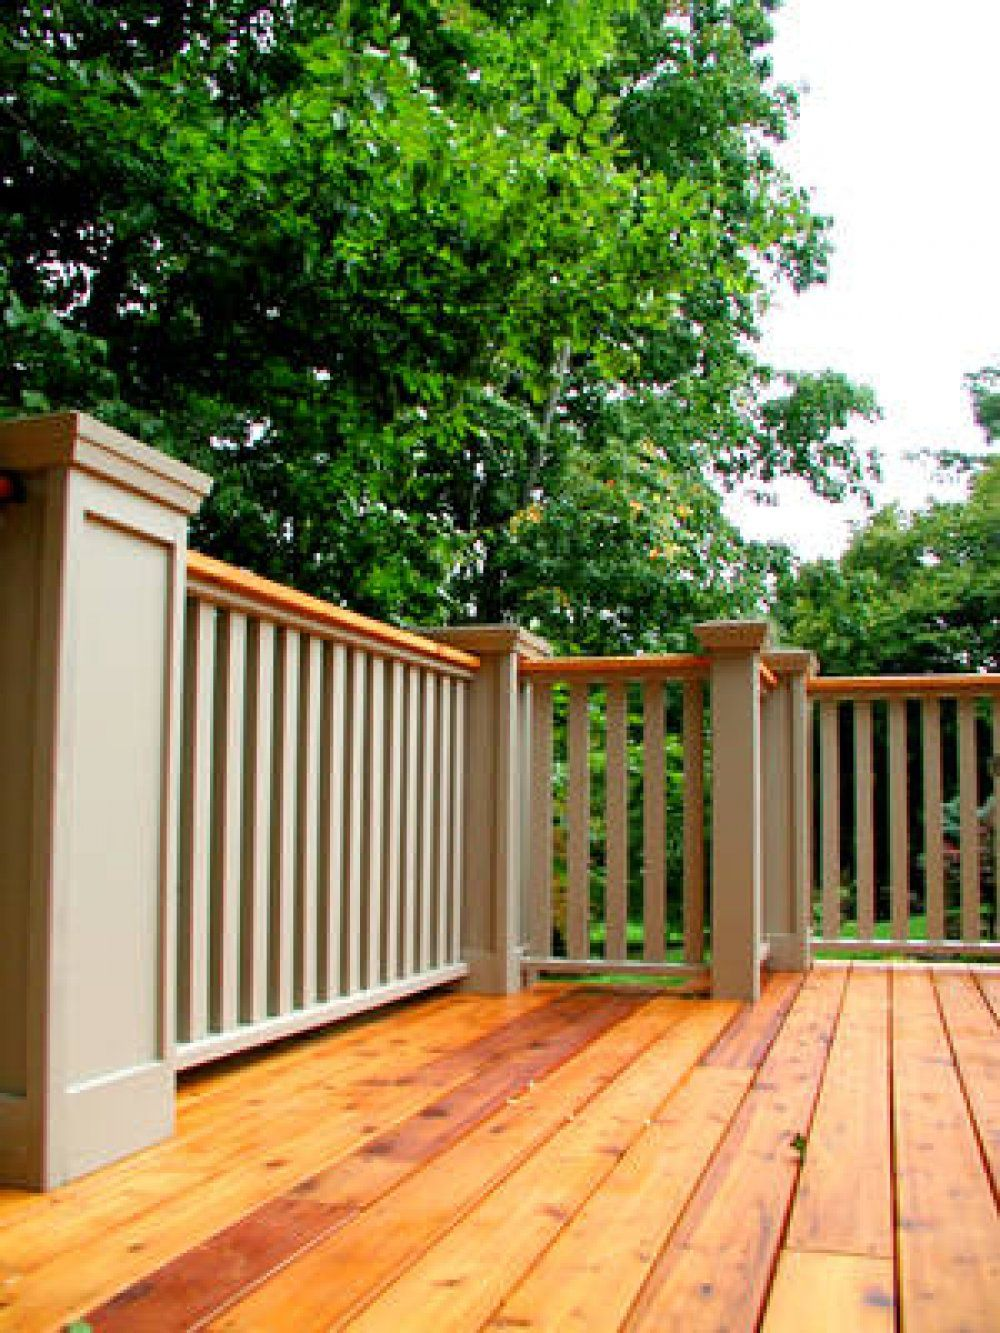 This Deck Railing Has Wooden Posts With Decorative Tops Deck Railing Design Wood Deck Railing Custom Deck Railing